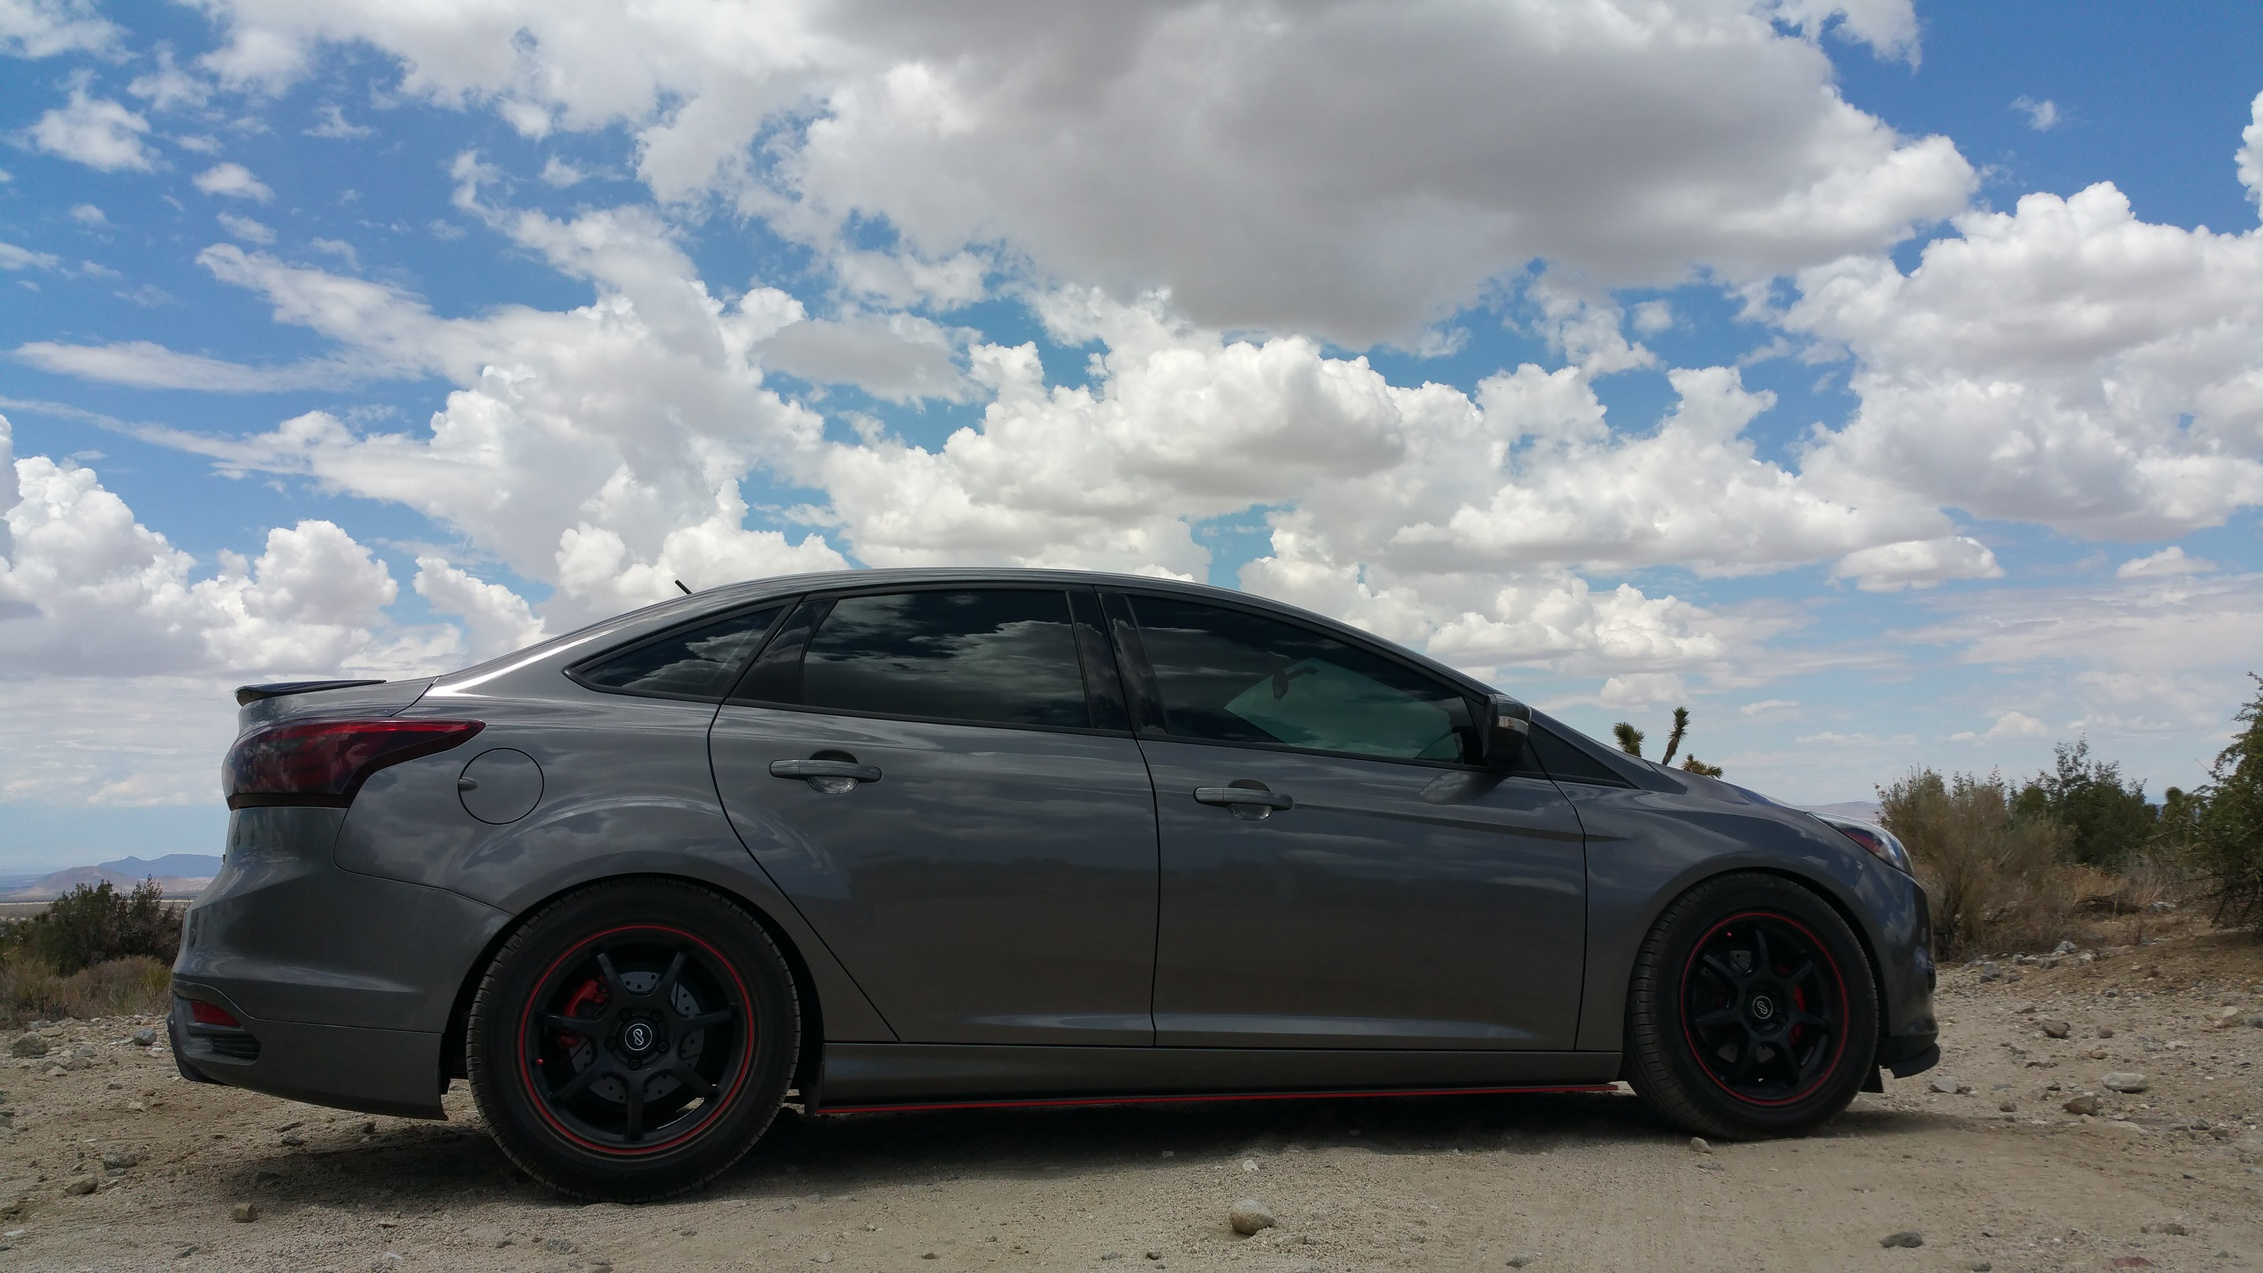 Post your mk3 ford focus 2012 present pics 20150612_134523 jpg